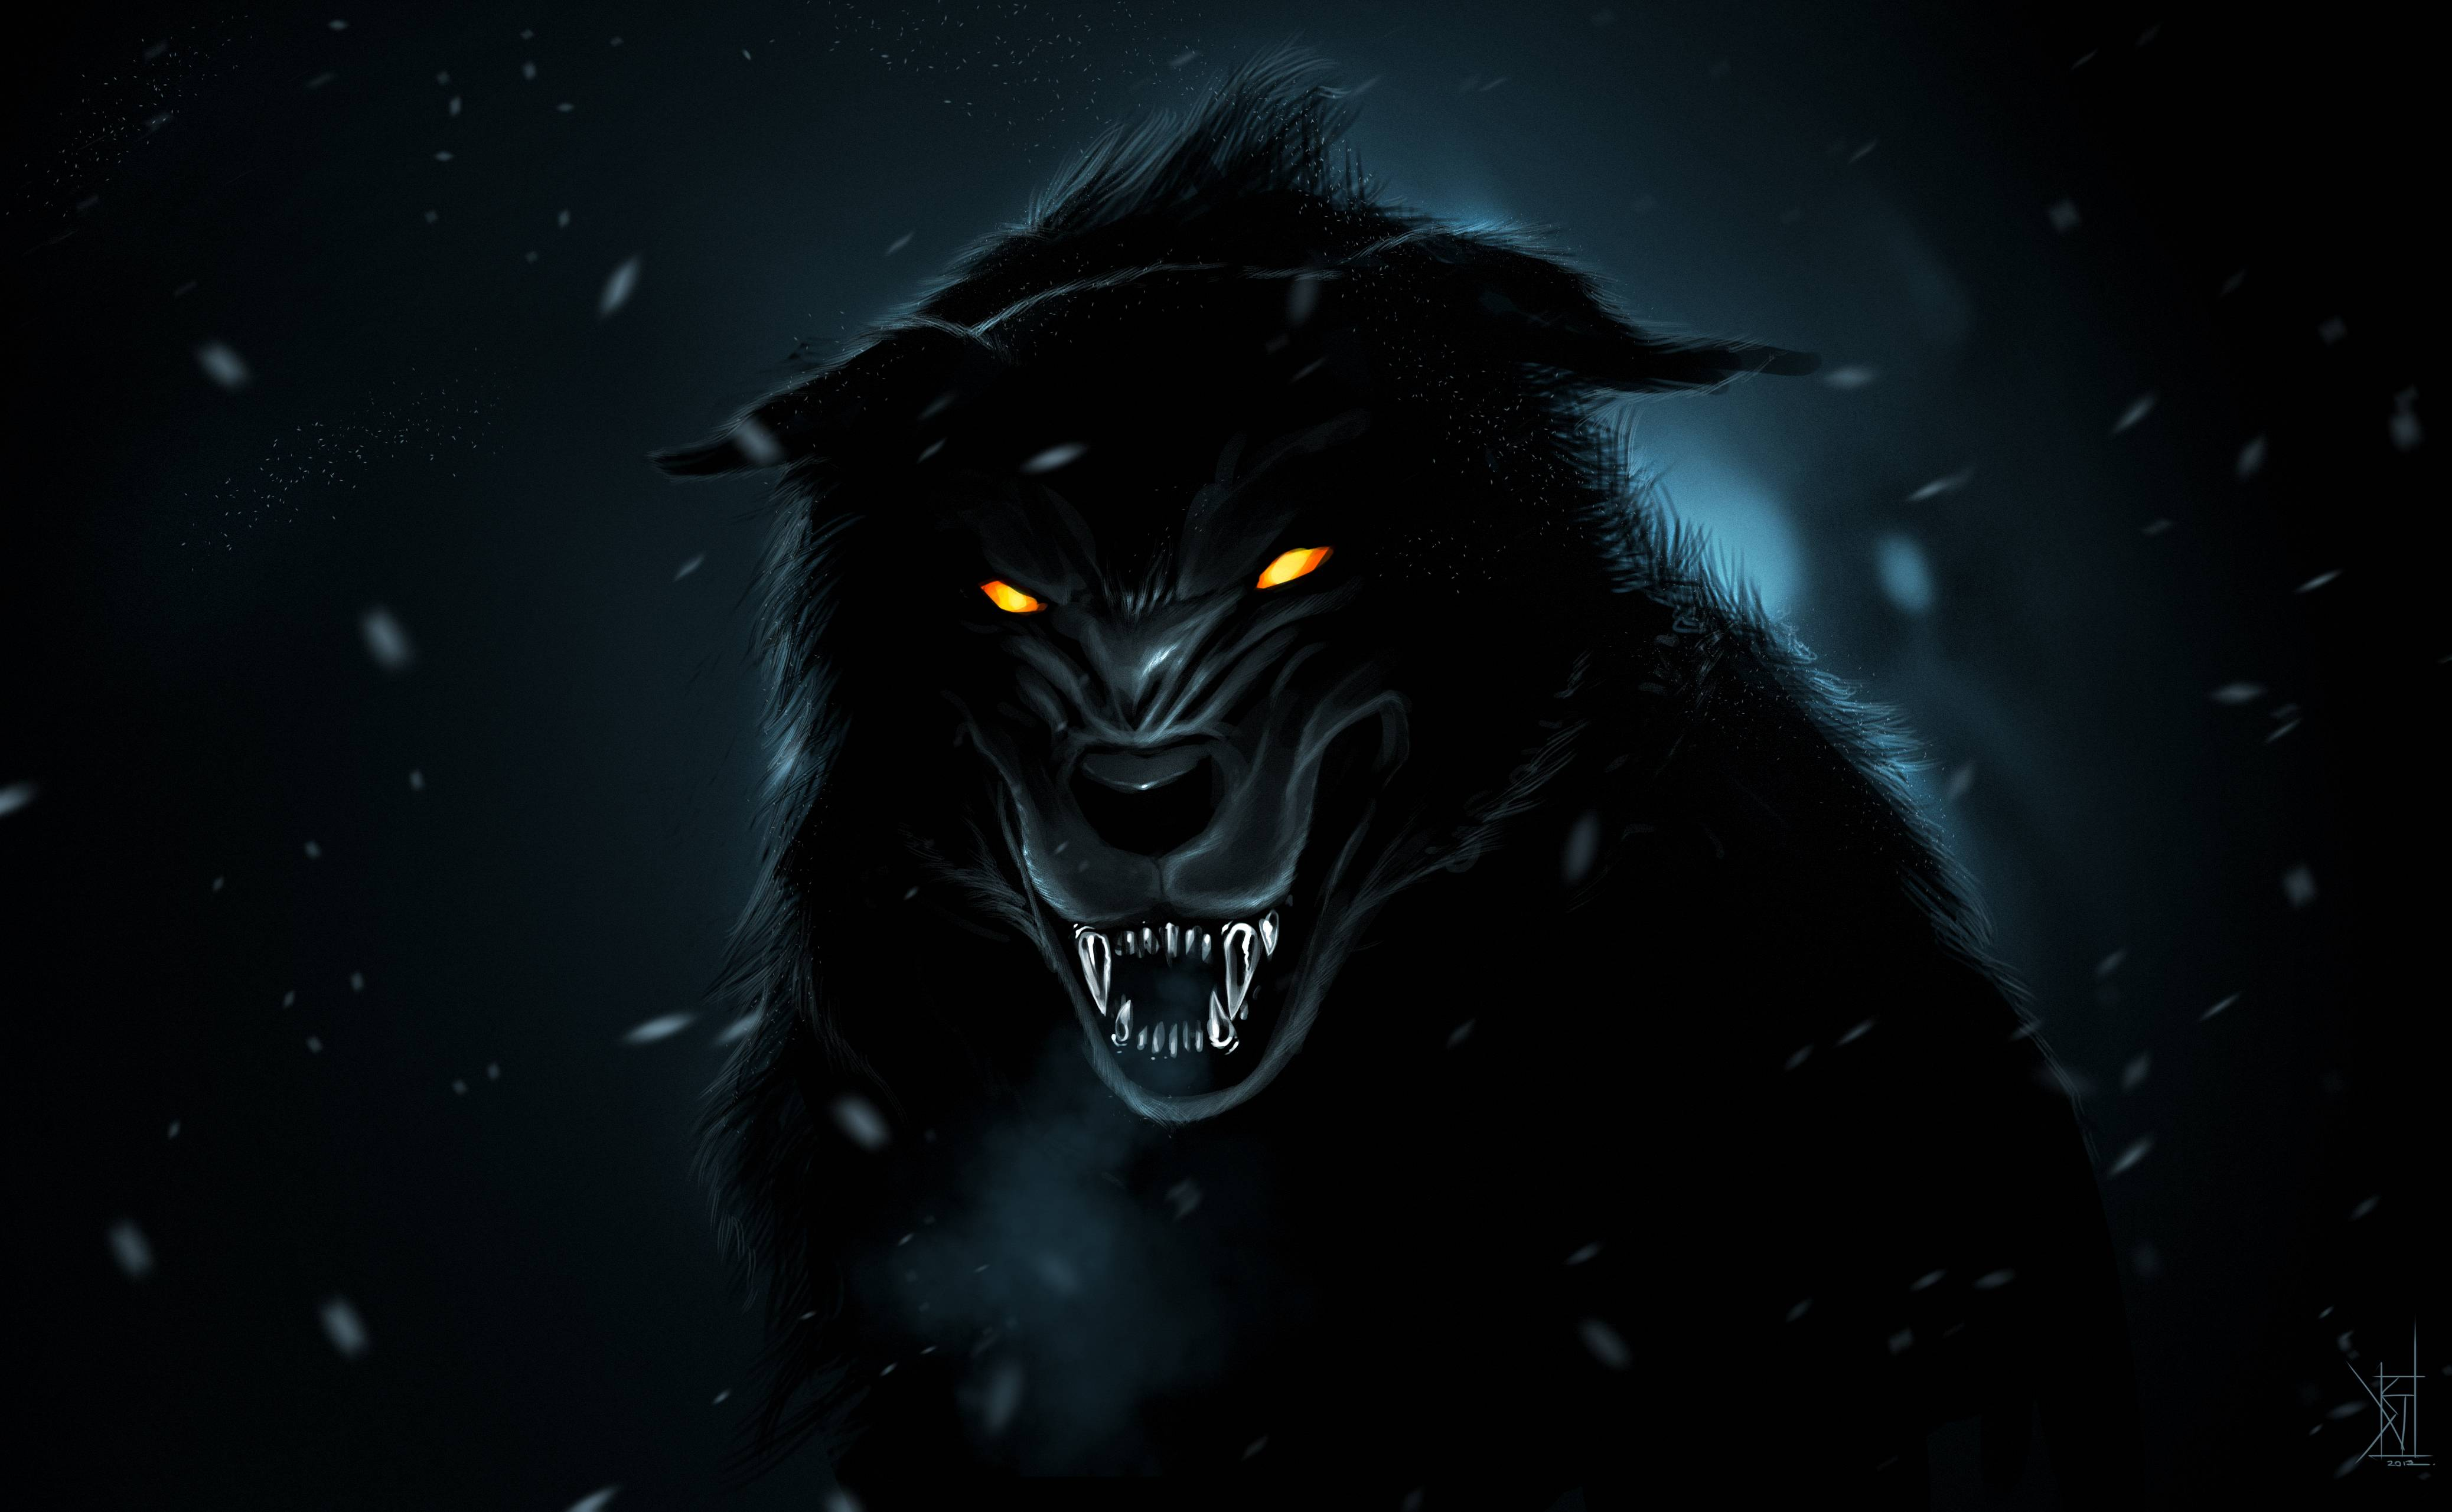 Dark wolf wallpapers wallpaper cave for Paint a dark picture